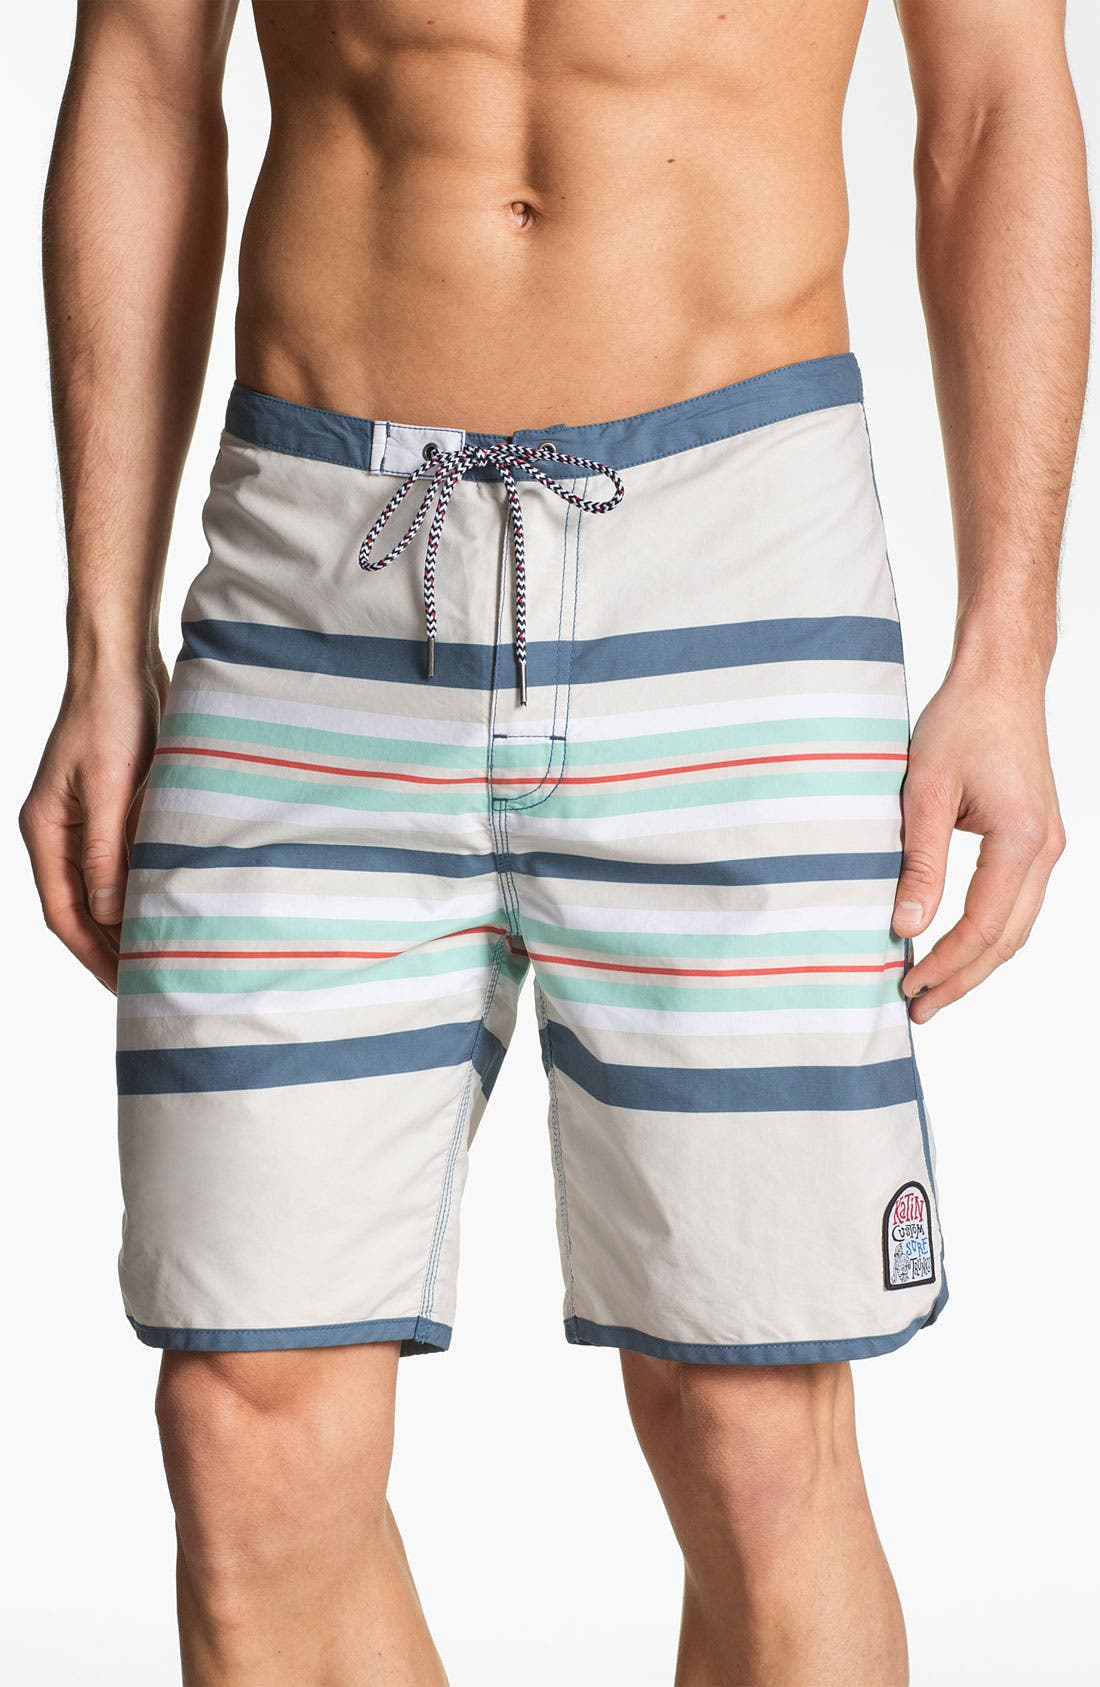 Alternate Image 1 Selected - Katin 'South Pacific' Stripe Print Board Shorts